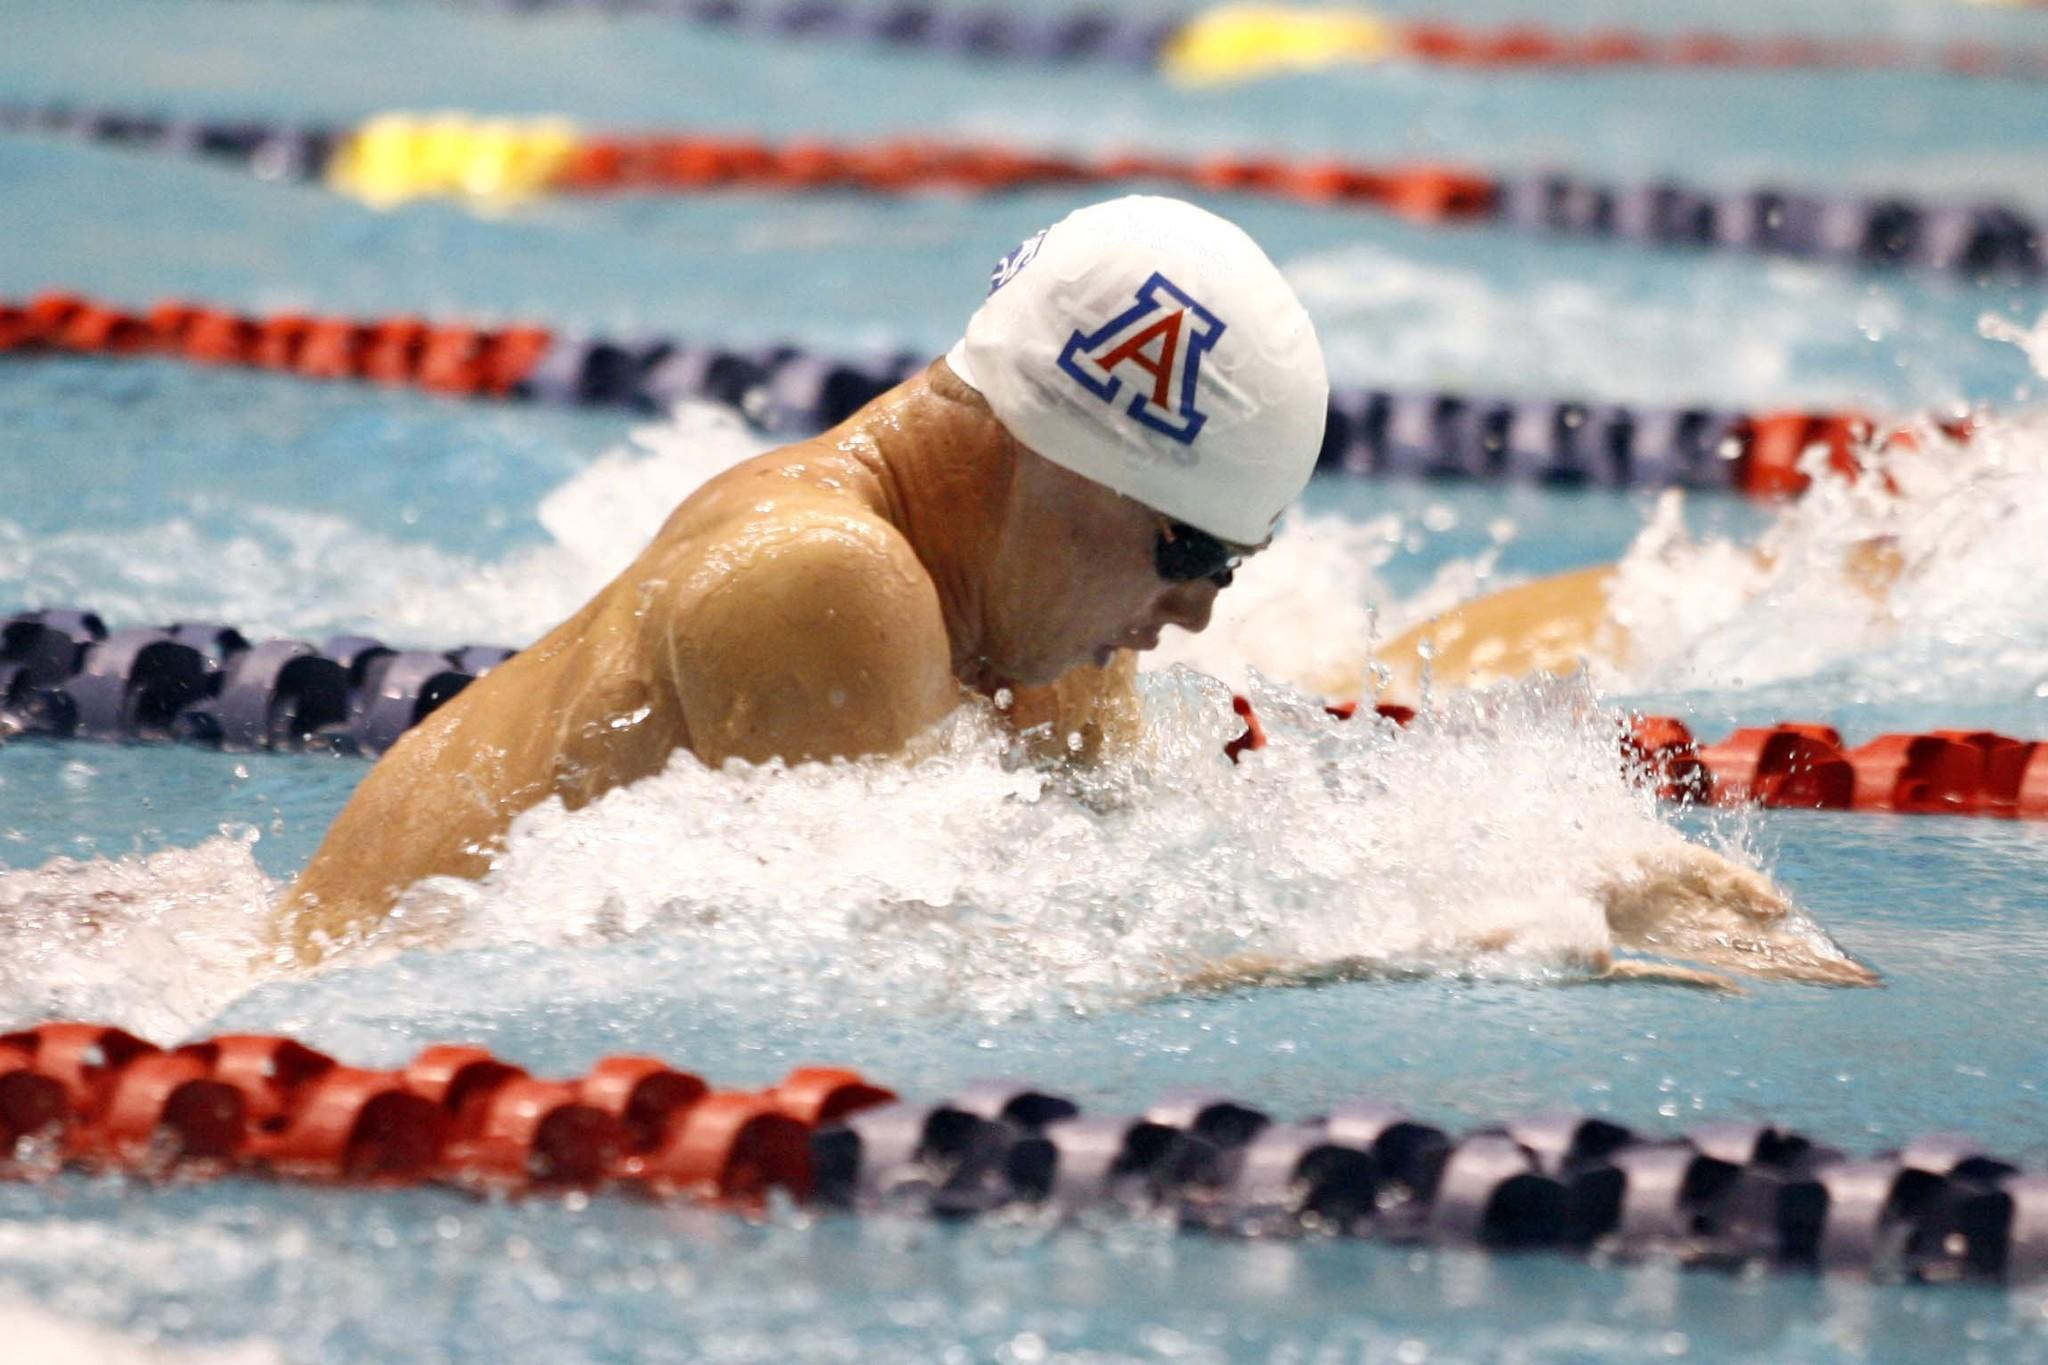 Kevin Cordes winning the 100 breaststroke at the 2012 NCAA Championships.